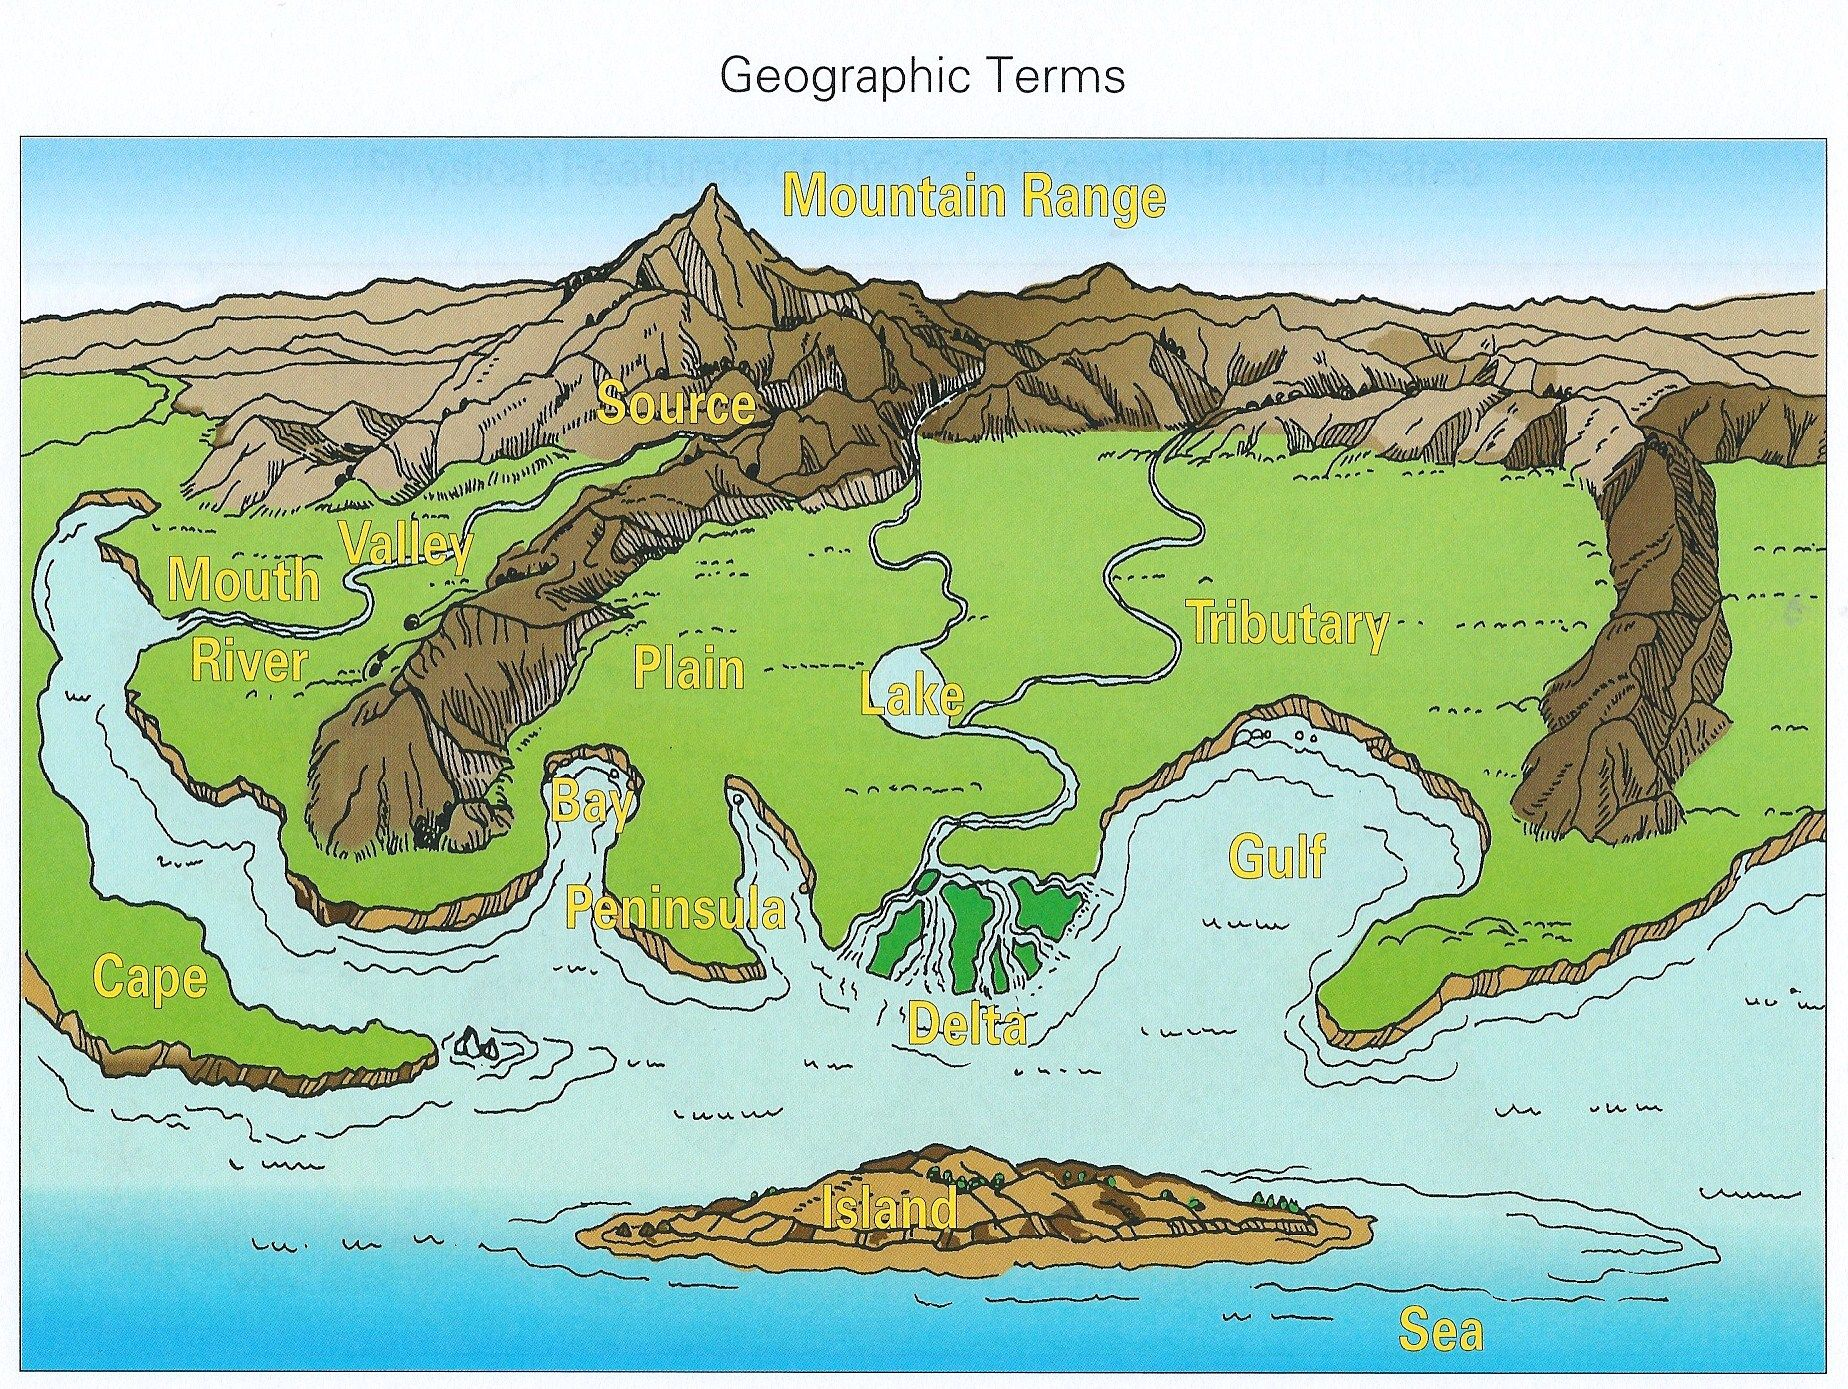 Worksheets Landforms And Bodies Of Water Worksheet landforms for kids geographic terms water and touch this image spi bodies of accor